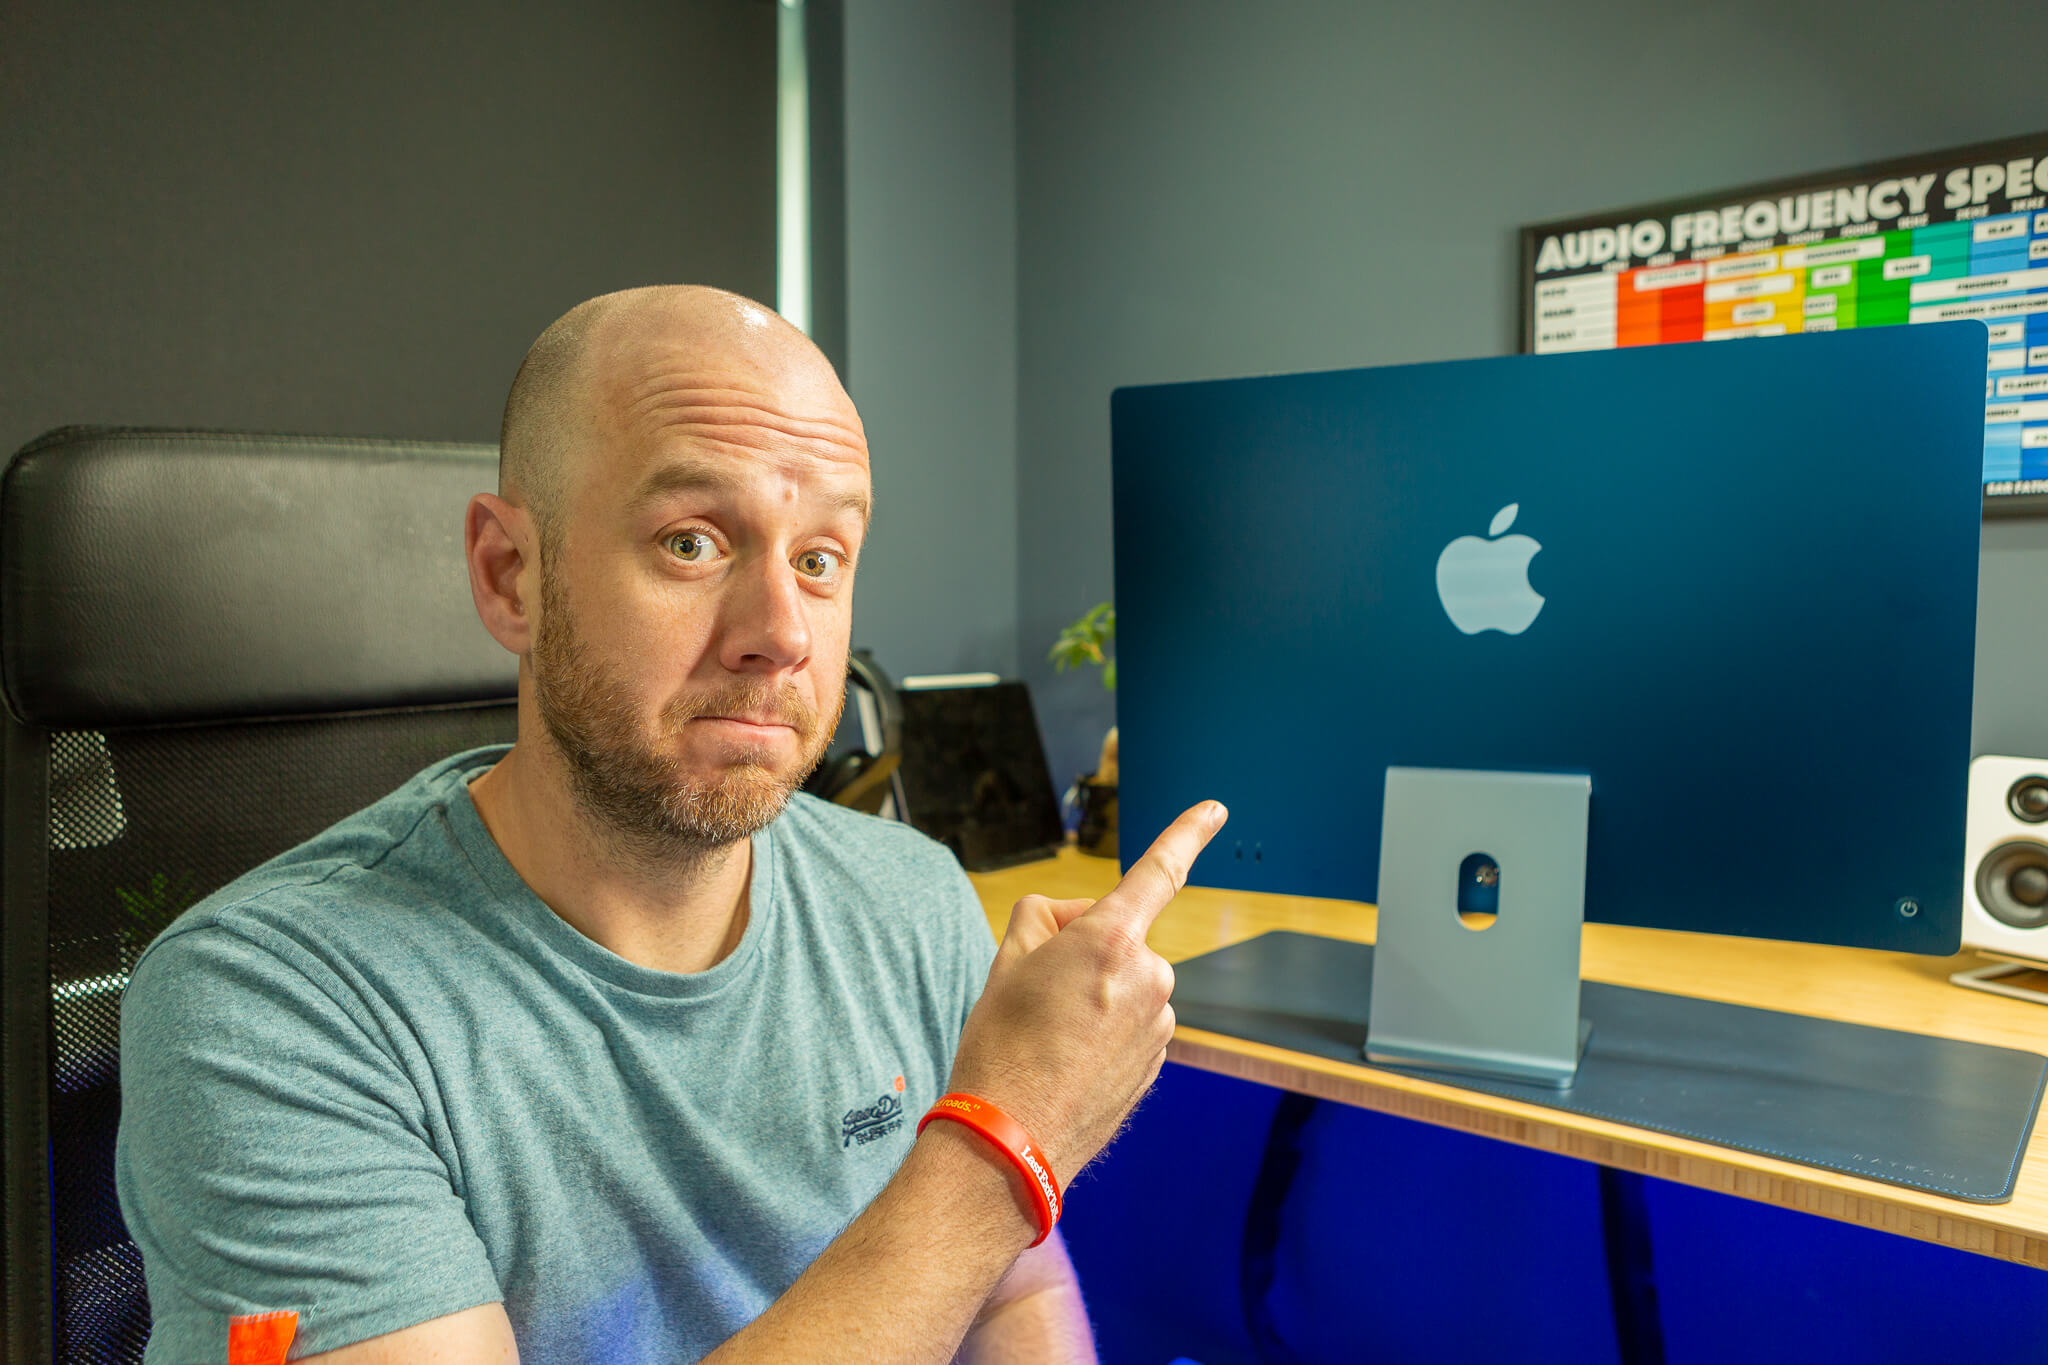 5 Reasons a Smaller iMac Might Be for You